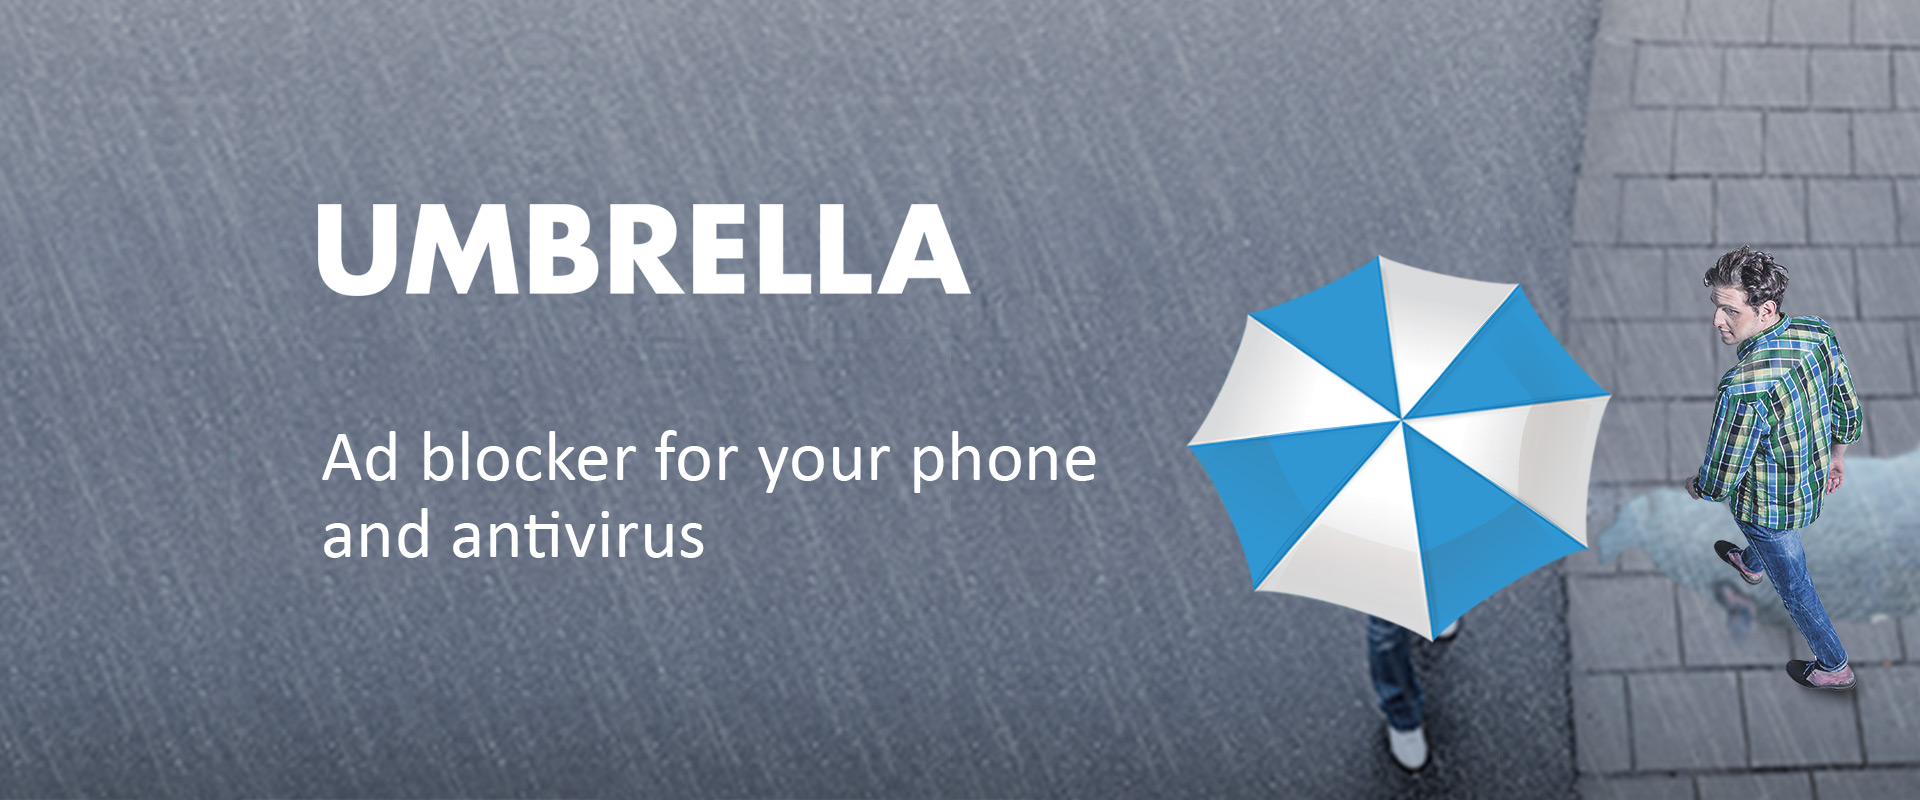 slide_app_umbrella_en